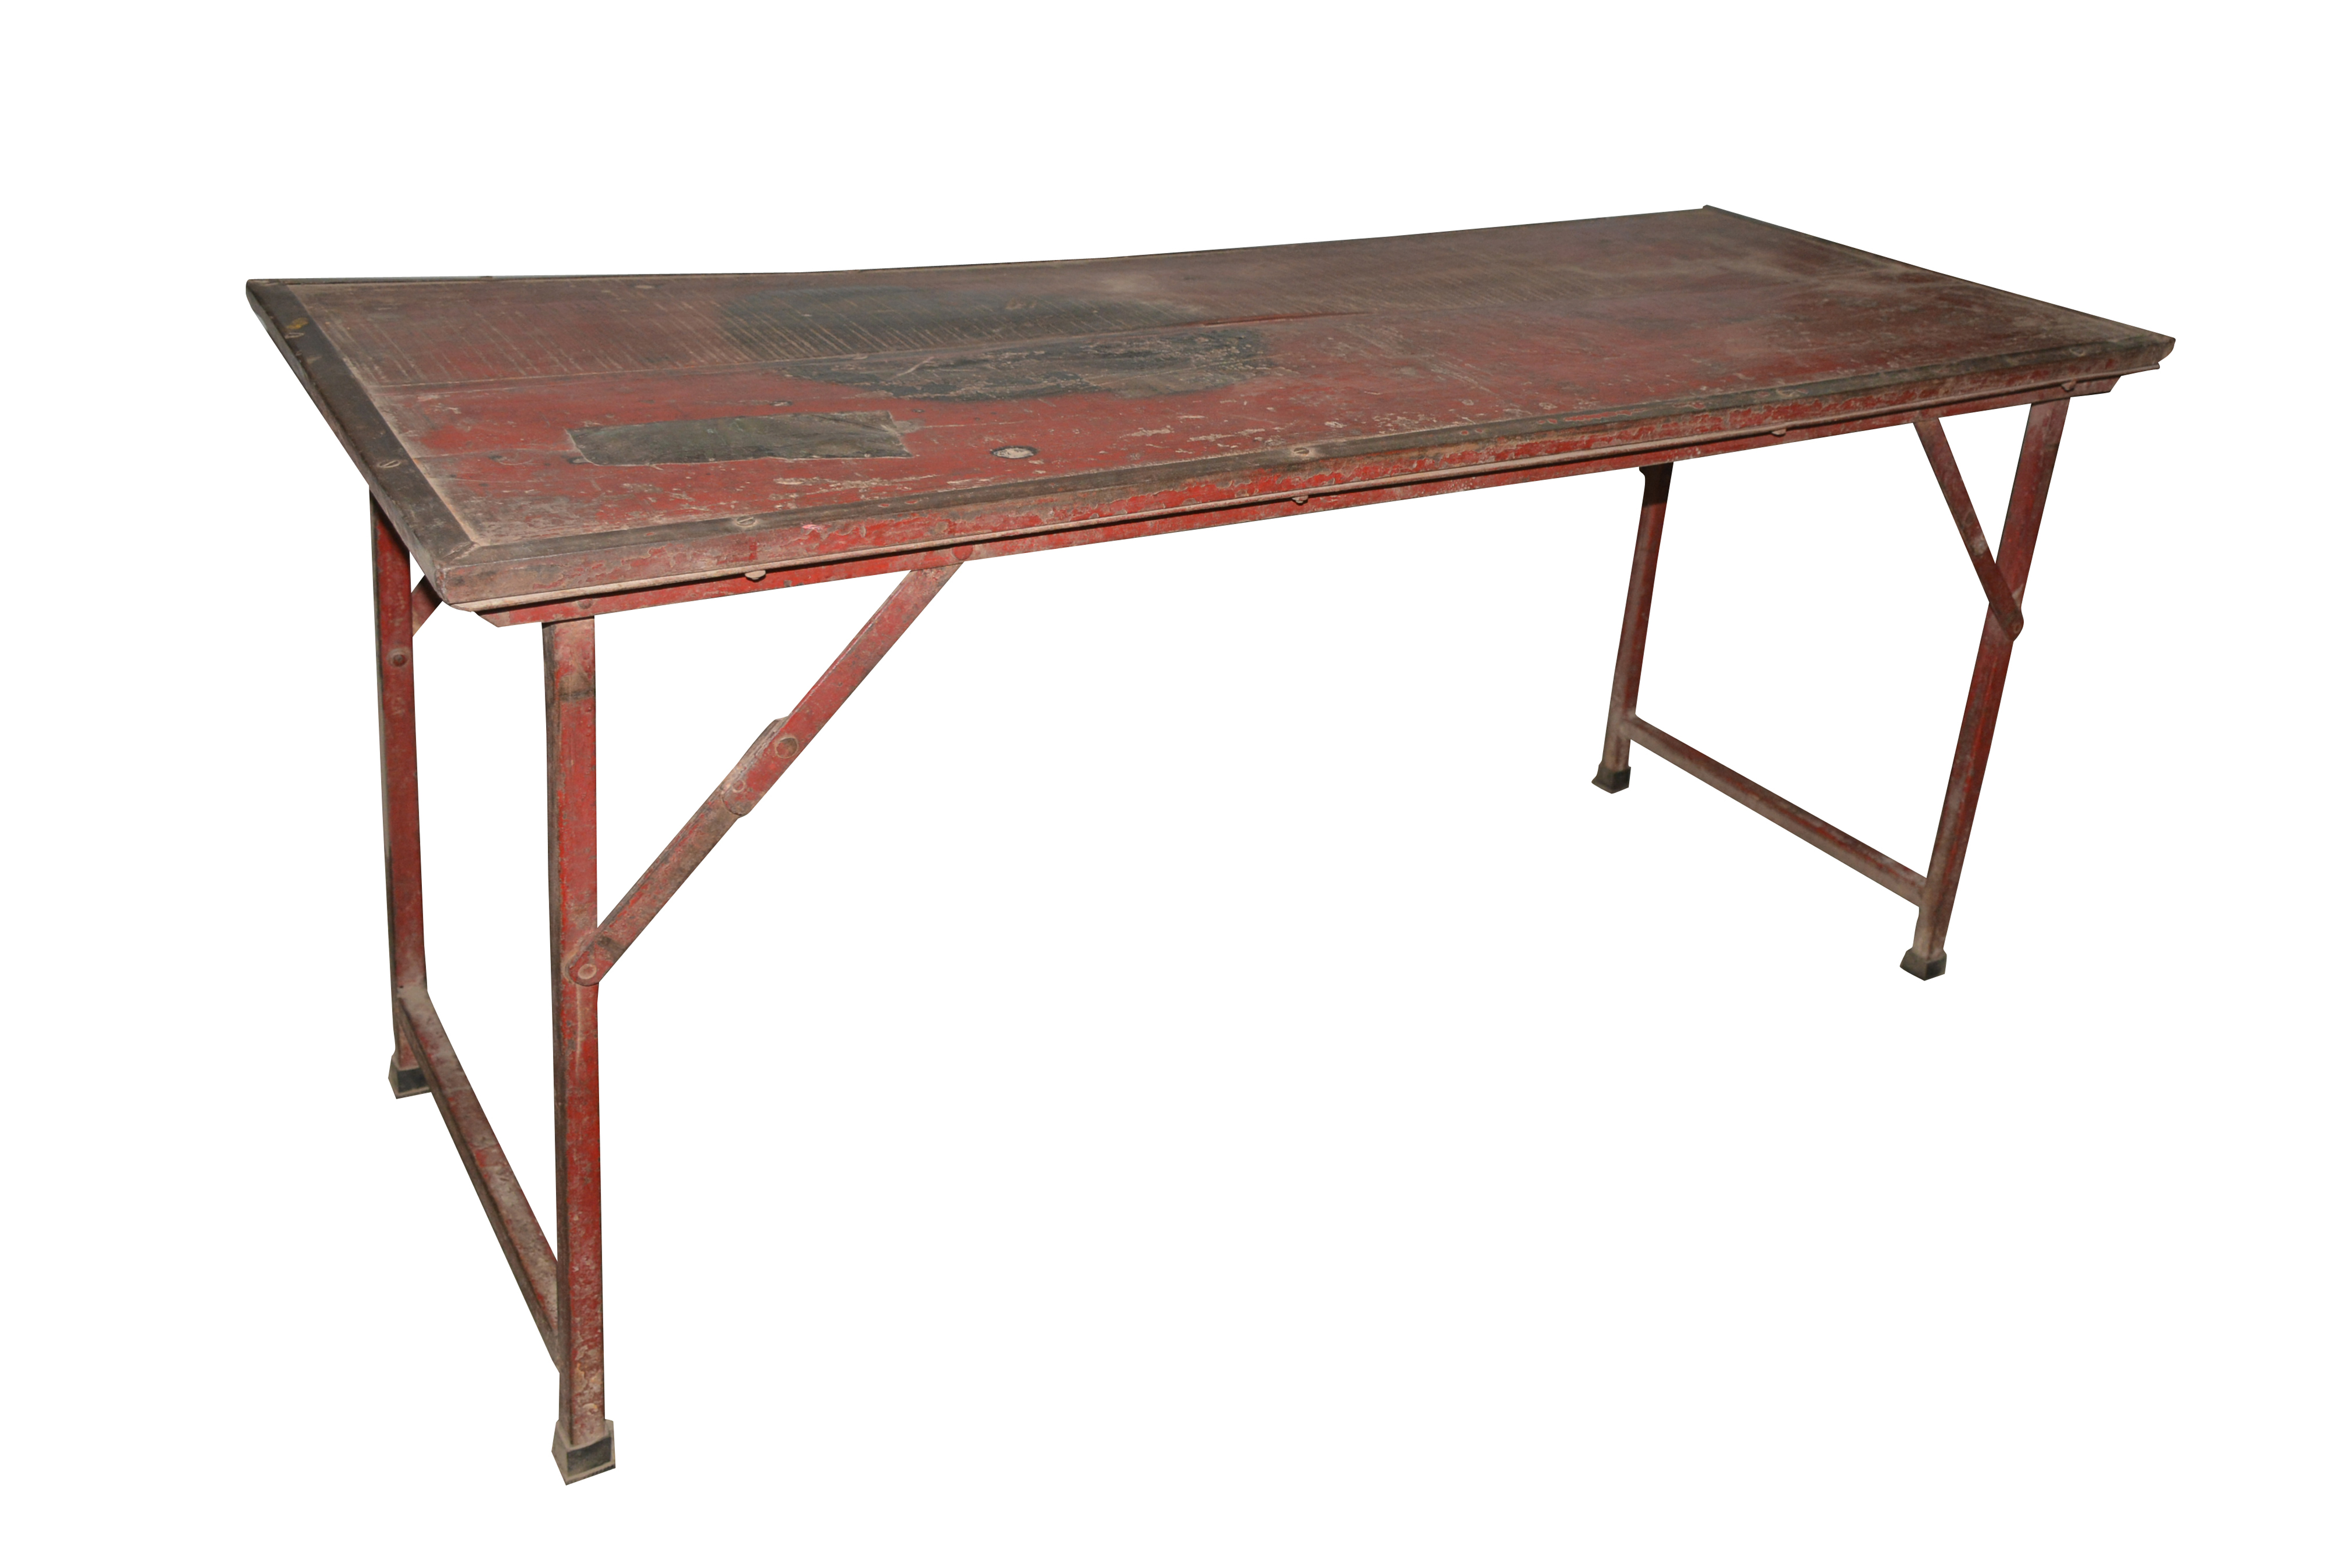 ANRA14105 RED - 154 x 60 x 77 cm